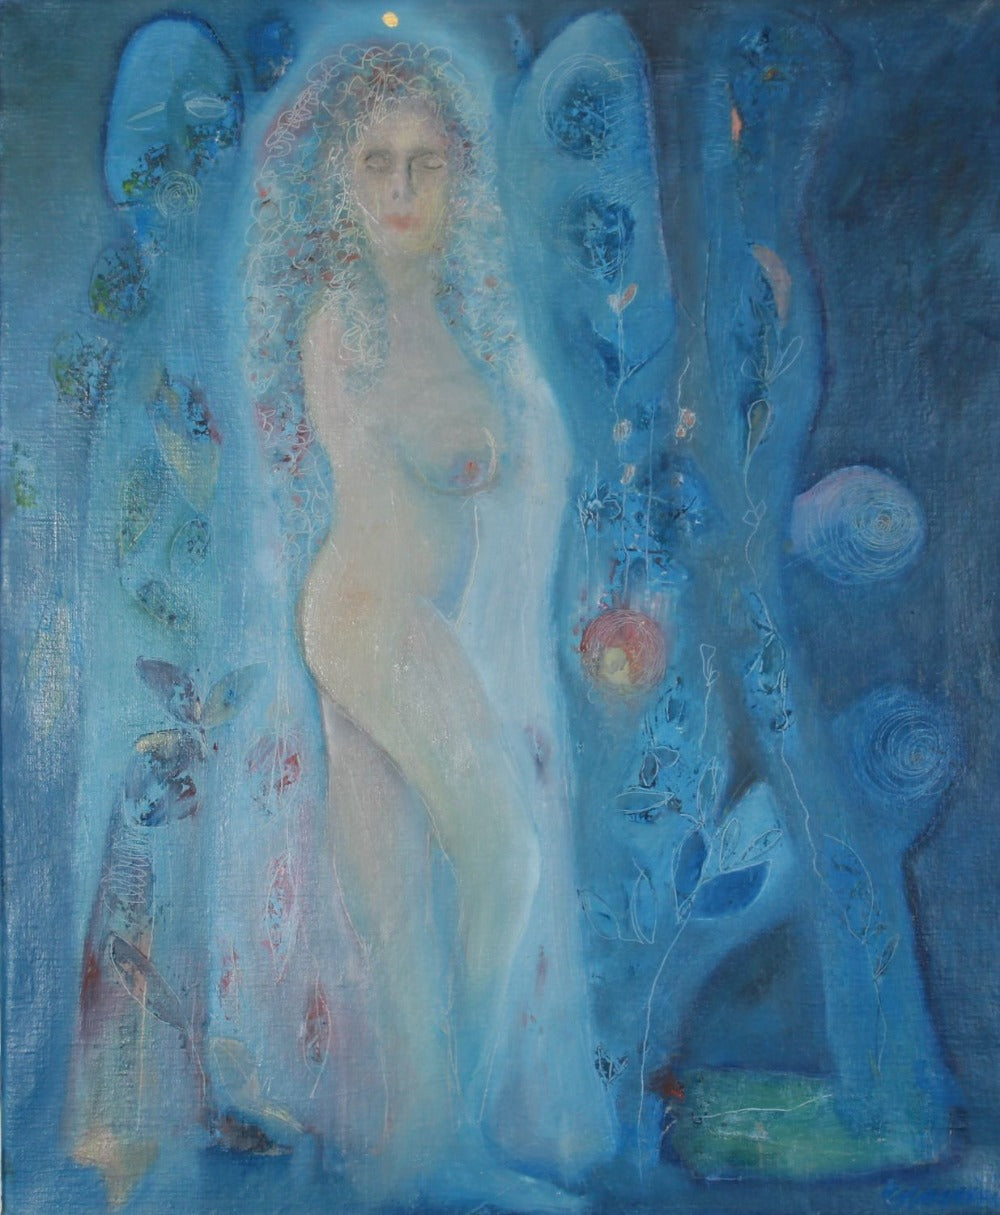 Blue art woman peace